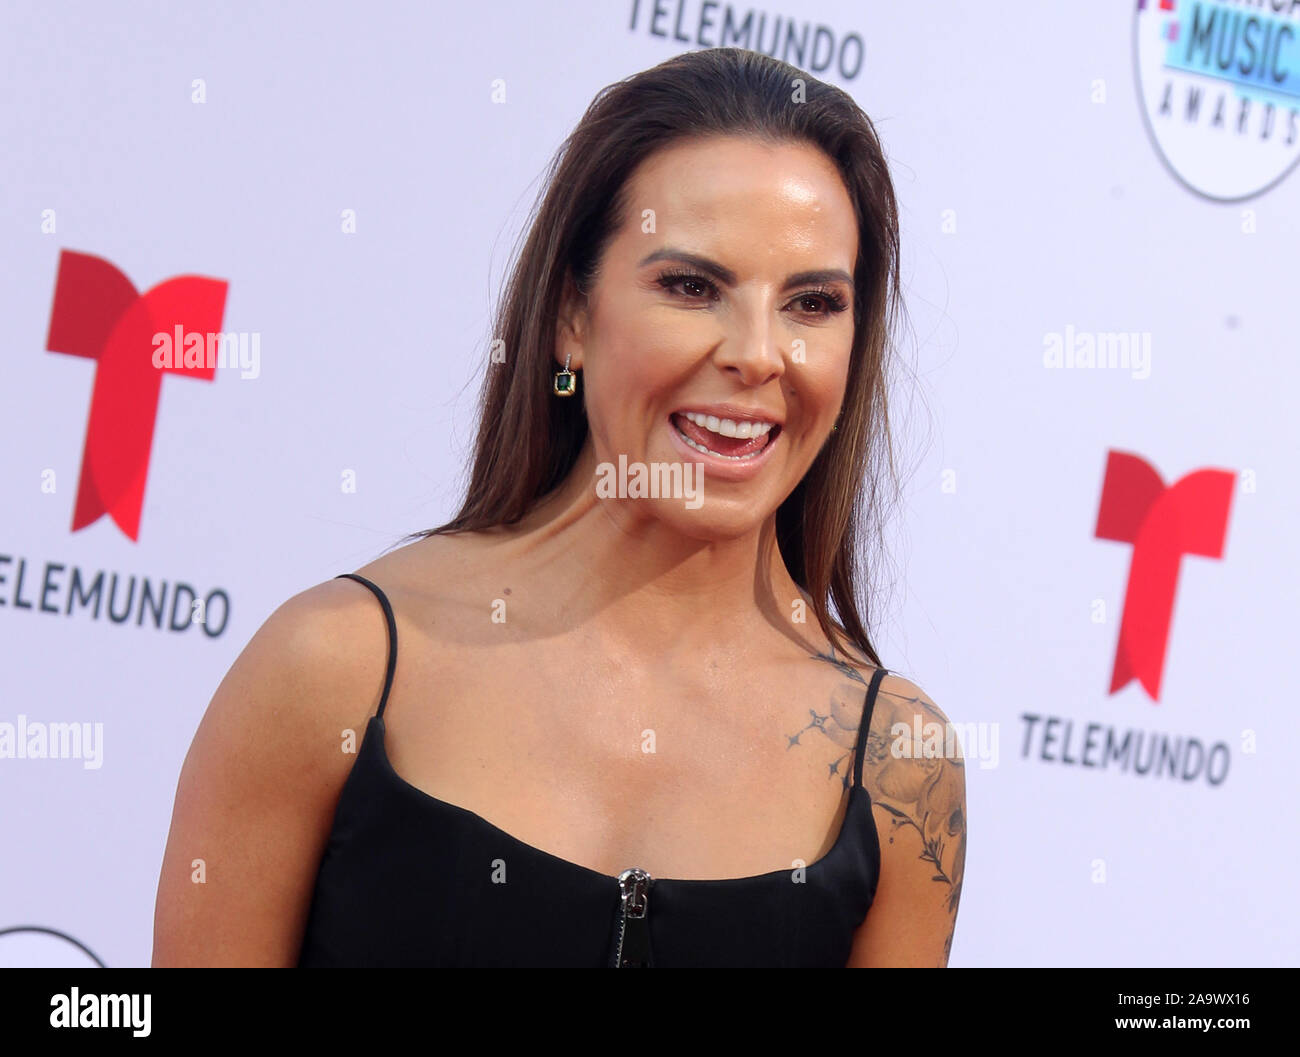 Latin American Music Awards 2019 held at the Dolby Theatre in Hollywood, California. Featuring: Kate del Castillo Where: Los Angeles, California, United States When: 17 Oct 2019 Credit: Adriana M. Barraza/WENN.com Stock Photo